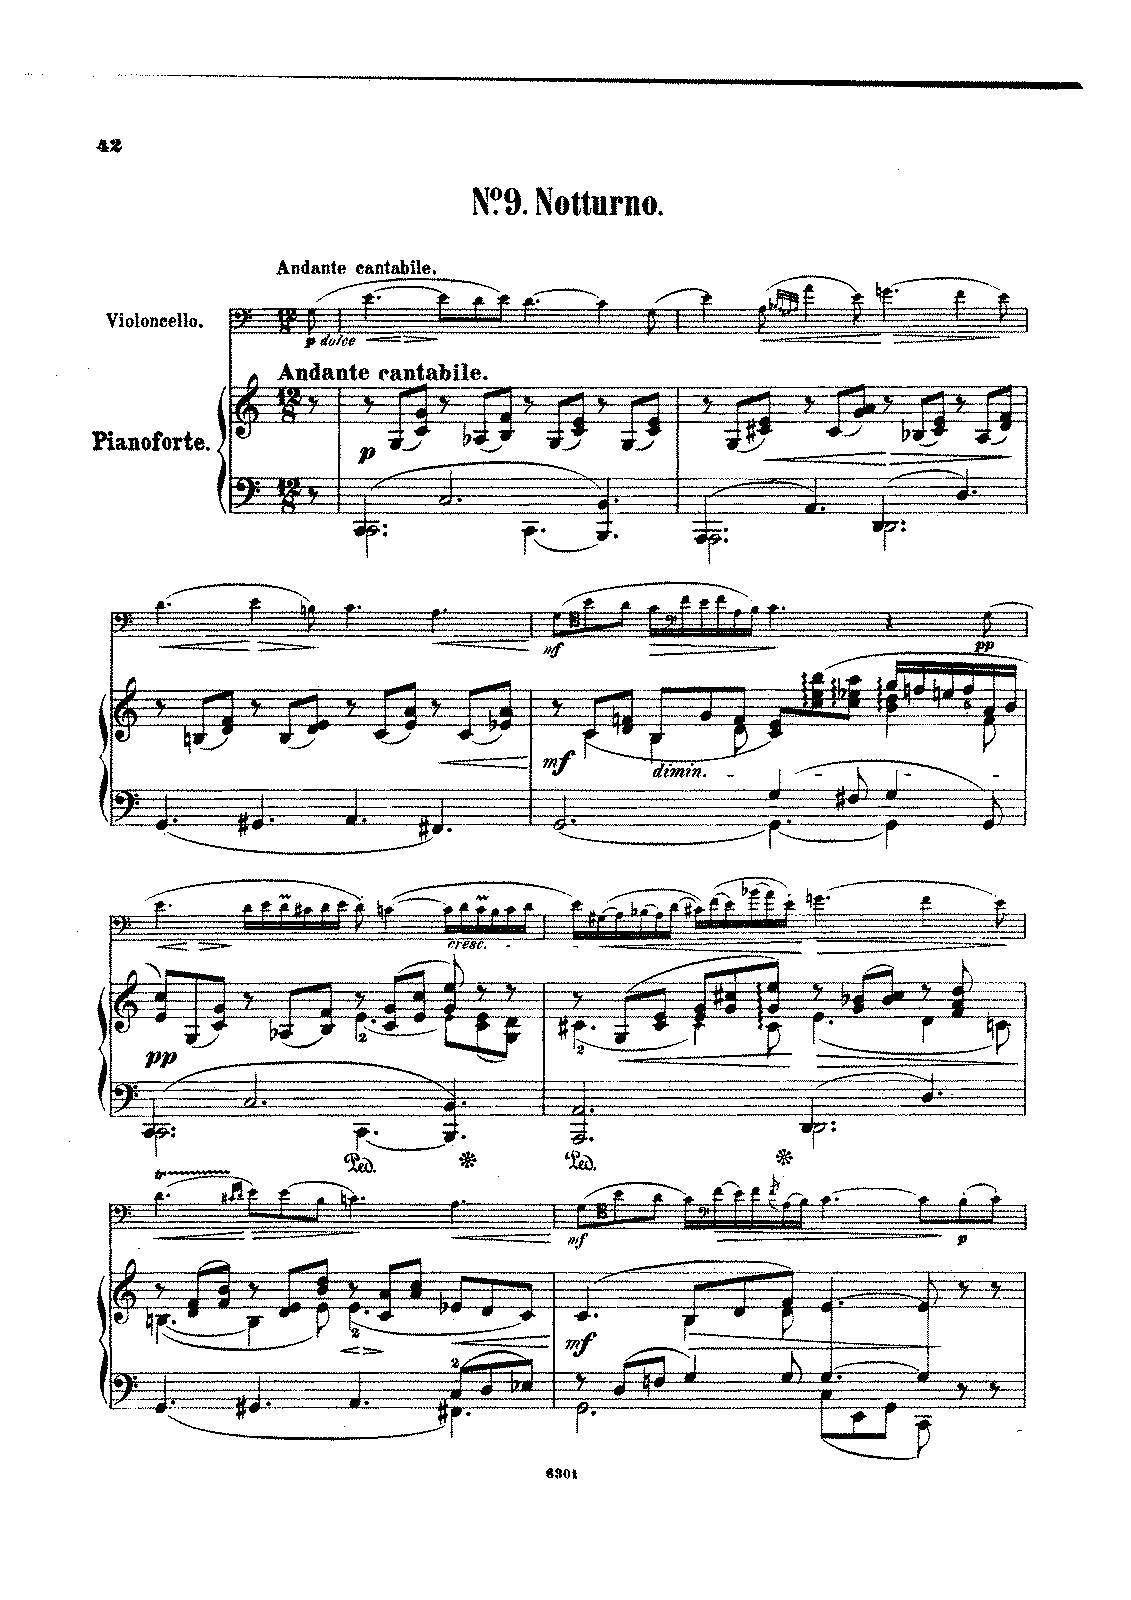 PMLP02312-Chopin - 9a Notturno Op9 No2 for Cello and Piano (Grutzmacher) score.pdf